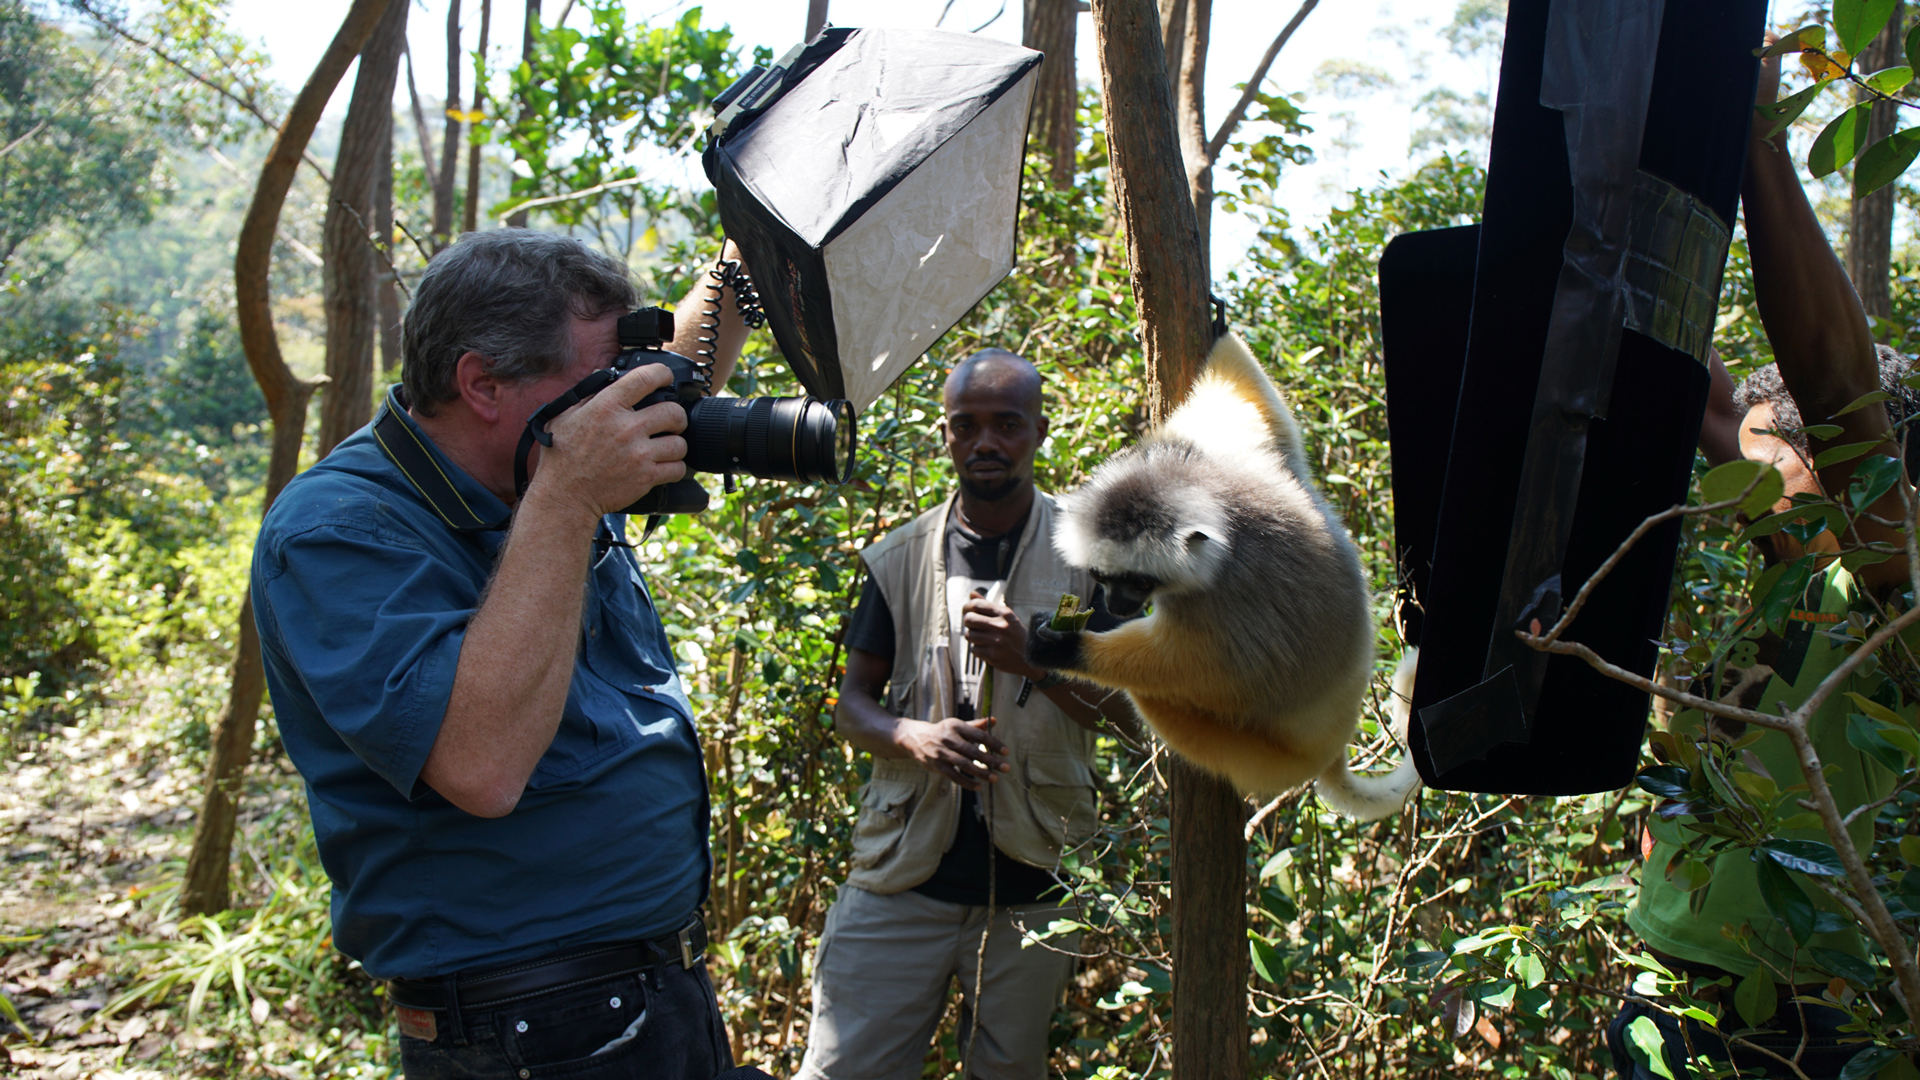 Episode 1 Preview - 0:30 - Travel with renowned photographer Joel Sartore as he photographs at-risk and rare species in the wild, in zoos, and in nature preserves.